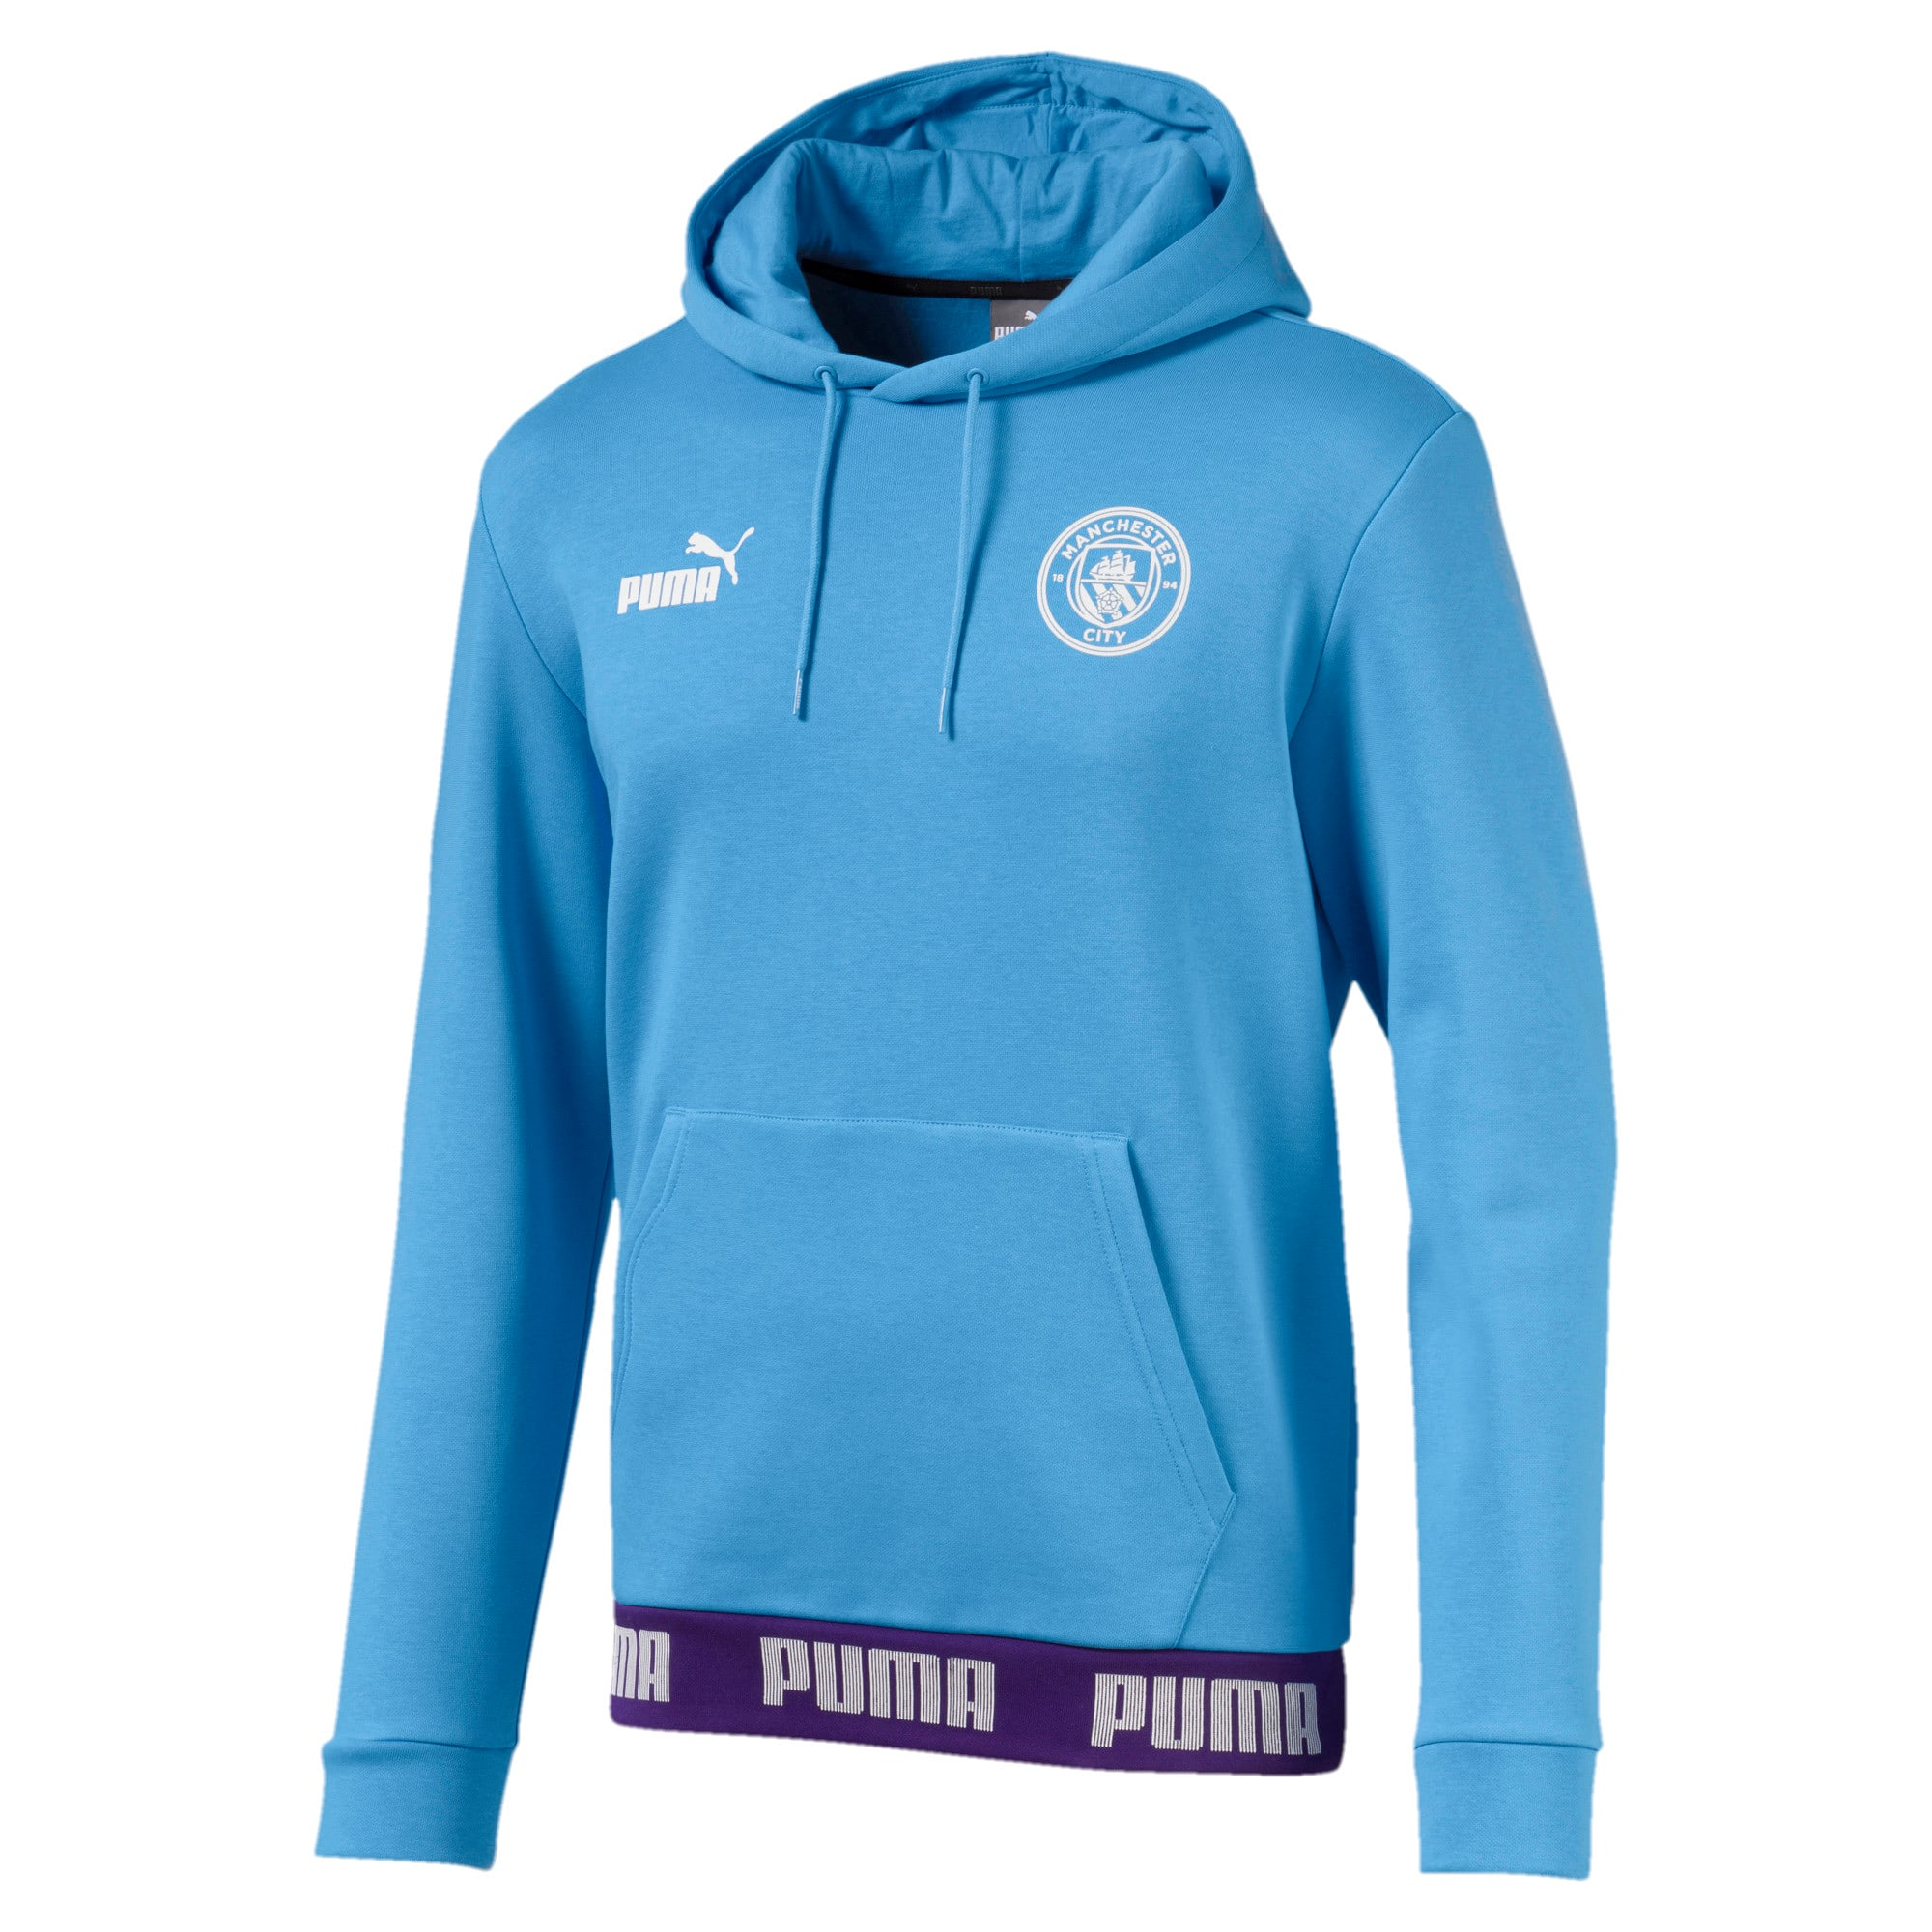 Thumbnail 1 of Manchester City FC FtblCulture Men's Hoodie, Team Light Blue-Puma White, medium